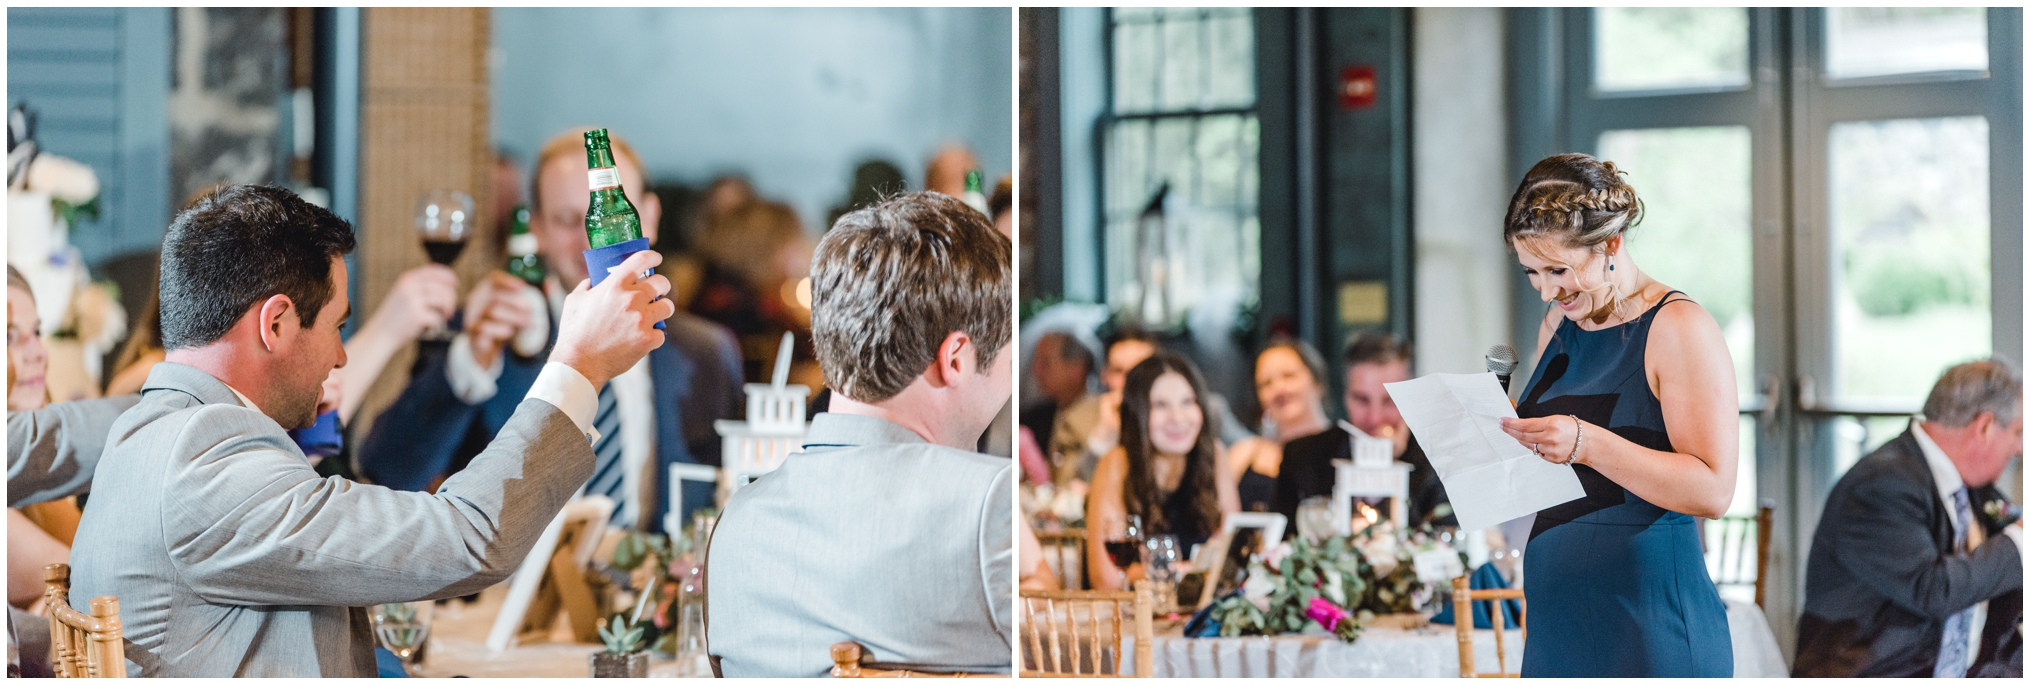 Krista Brackin Photography | April Wedding at The Carriage House at Rockwood Park_0113.jpg